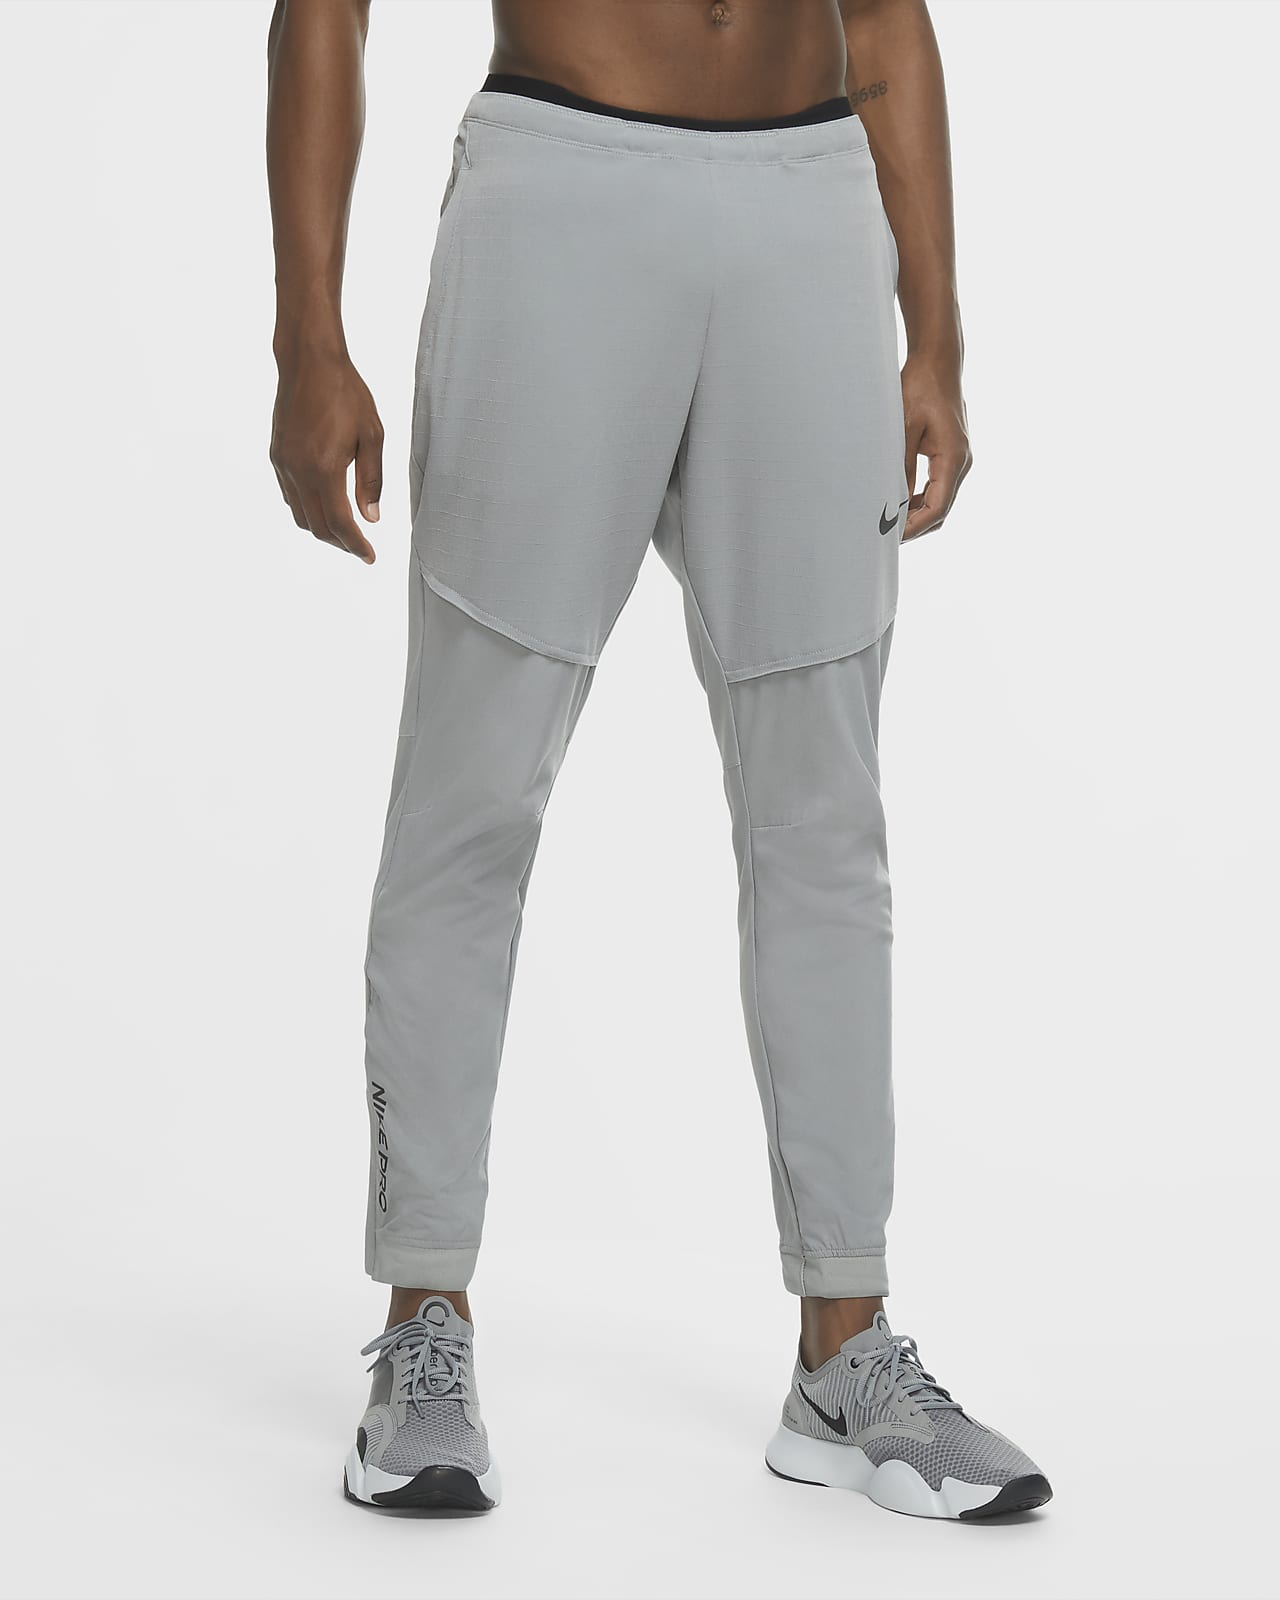 Nike Pro Flex Rep Men's Trousers